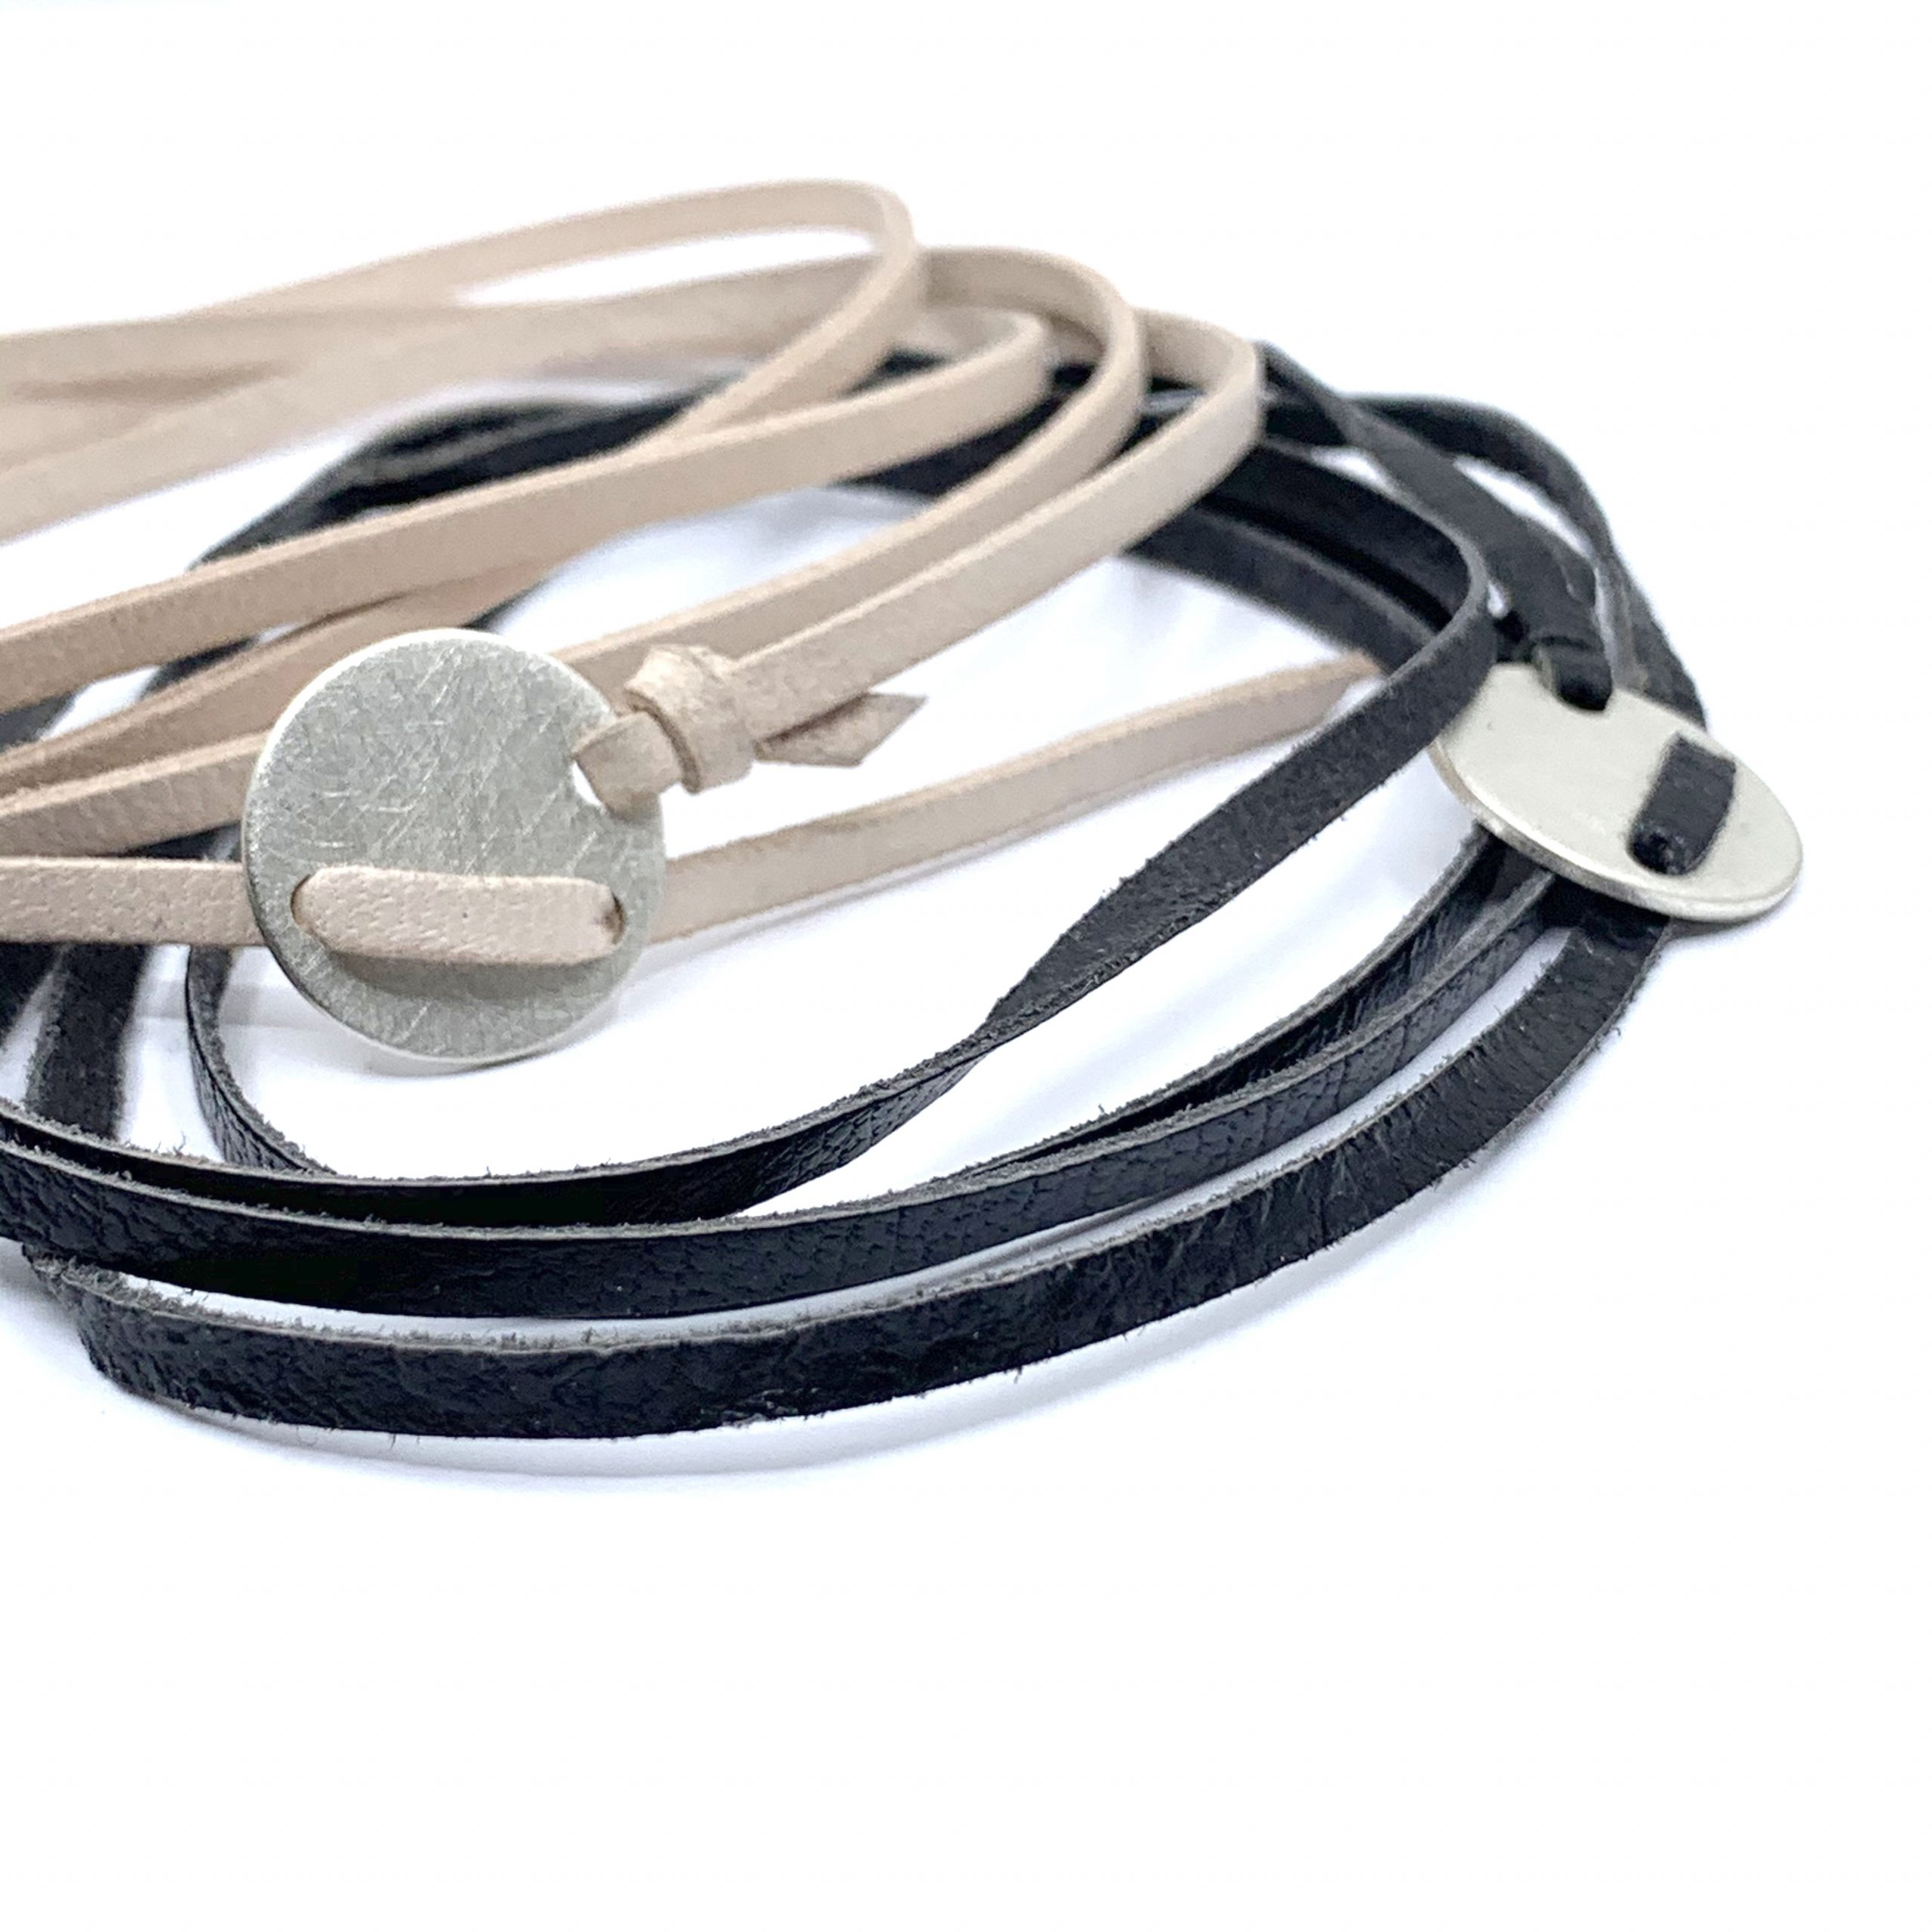 Unisex silver and leather bracelet